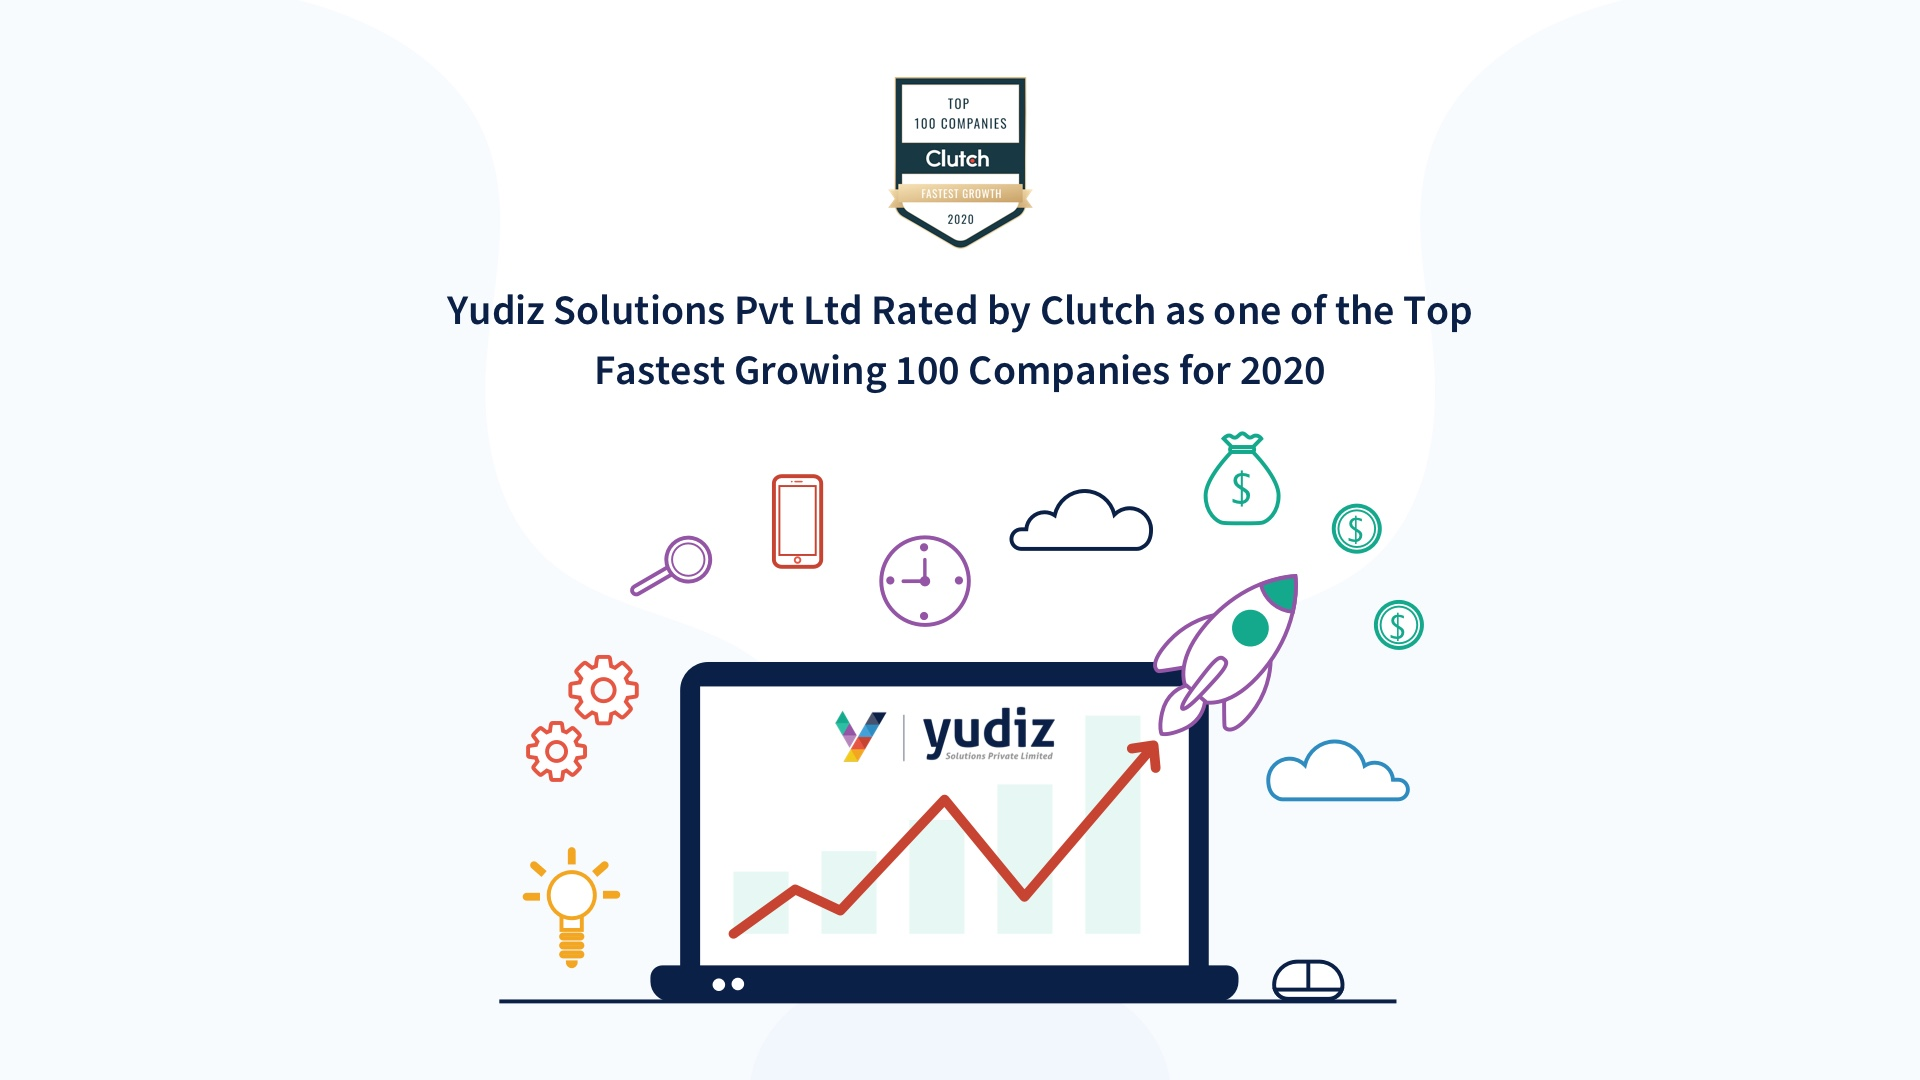 Yudiz Solutions labelled as one of the Top Fastest Growing 100 Companies for 2020 by Clutch